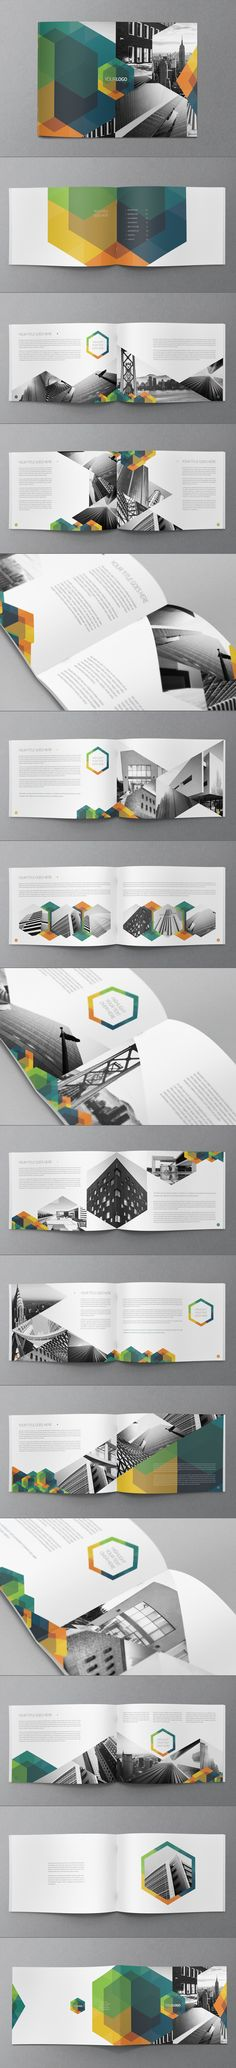 Hexo Brochure Design by Abra Design, via Behance